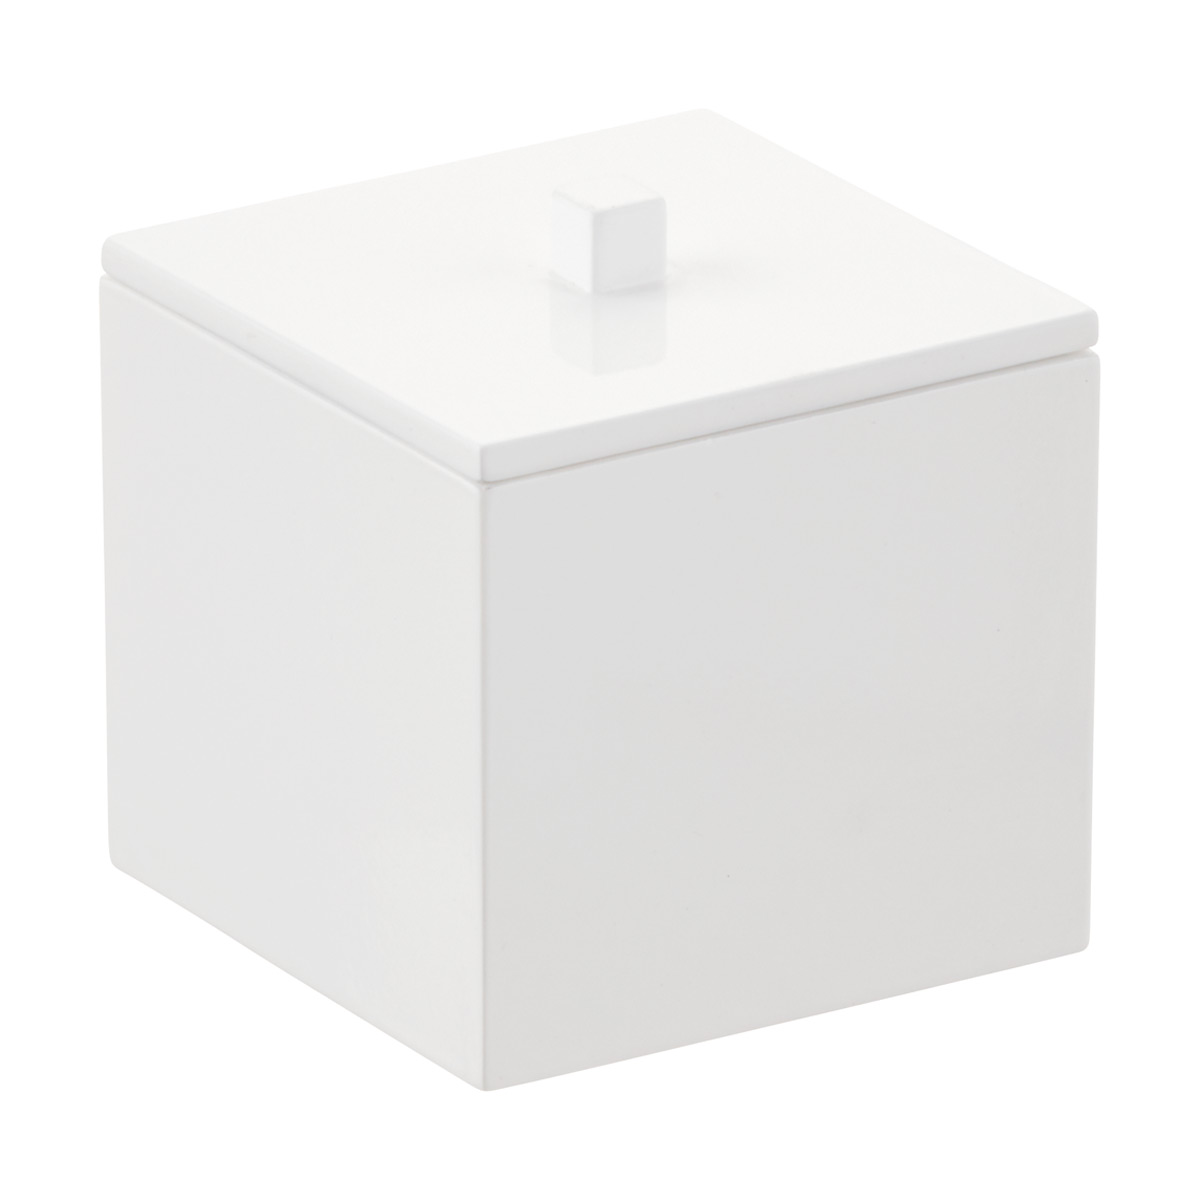 Medium White Square Lacquered Canister